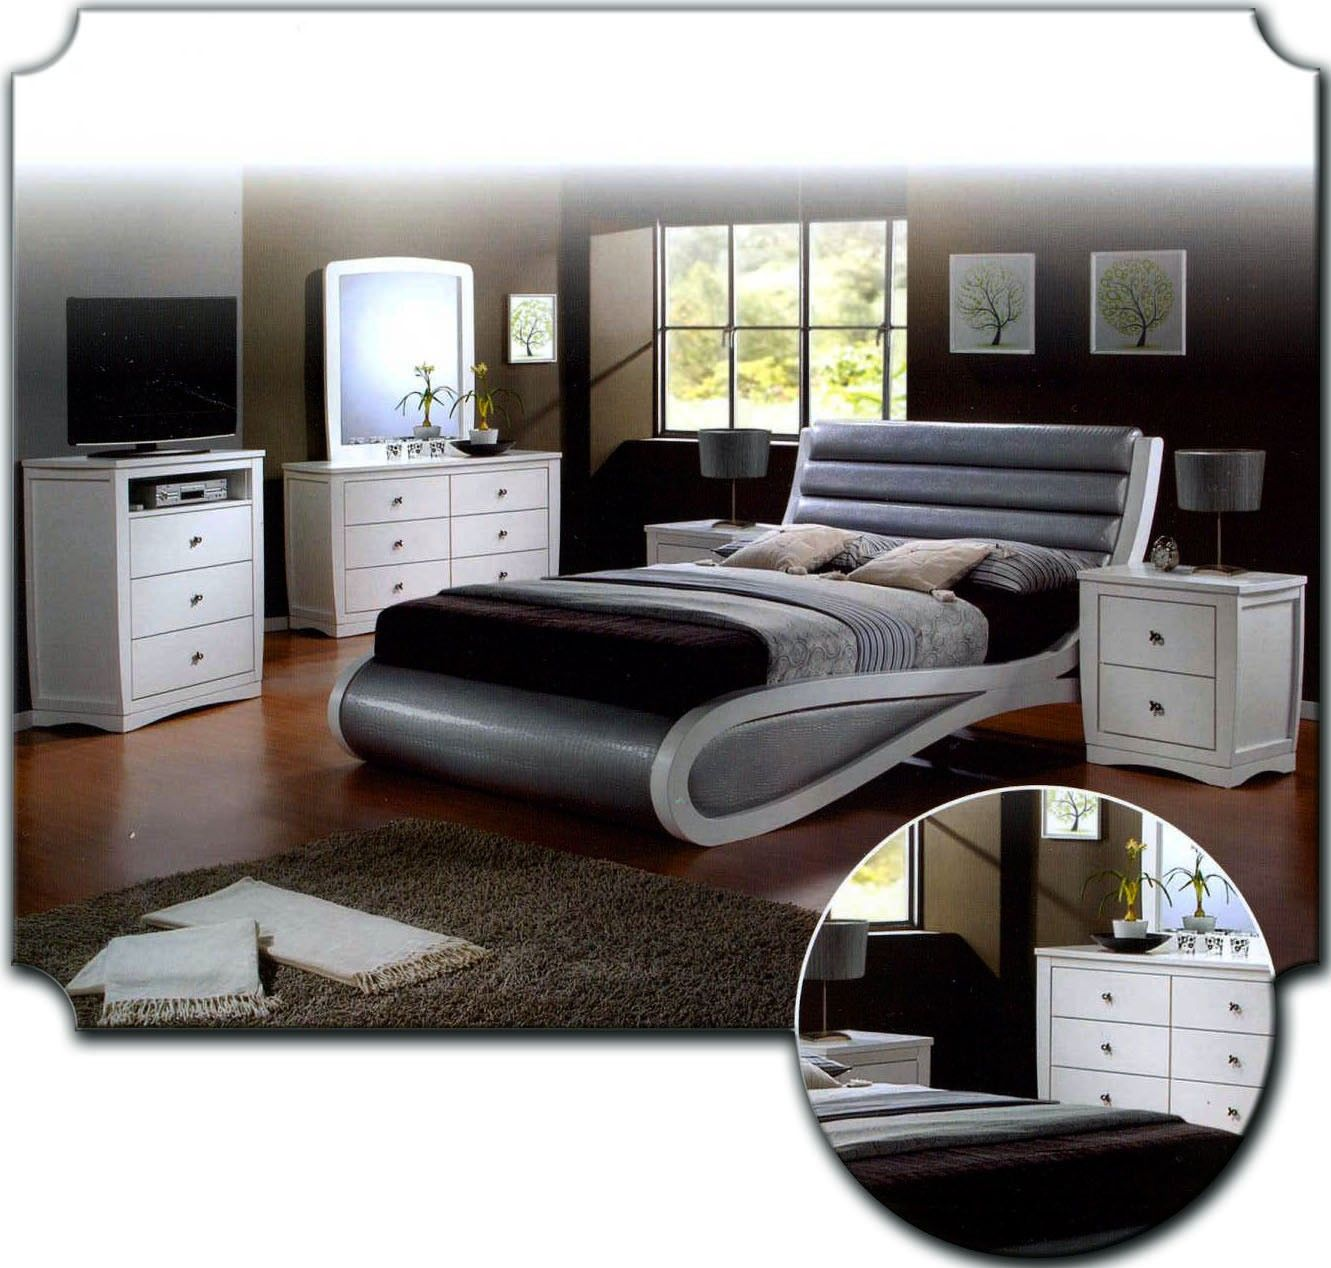 Teenage boys bedroom furniture -